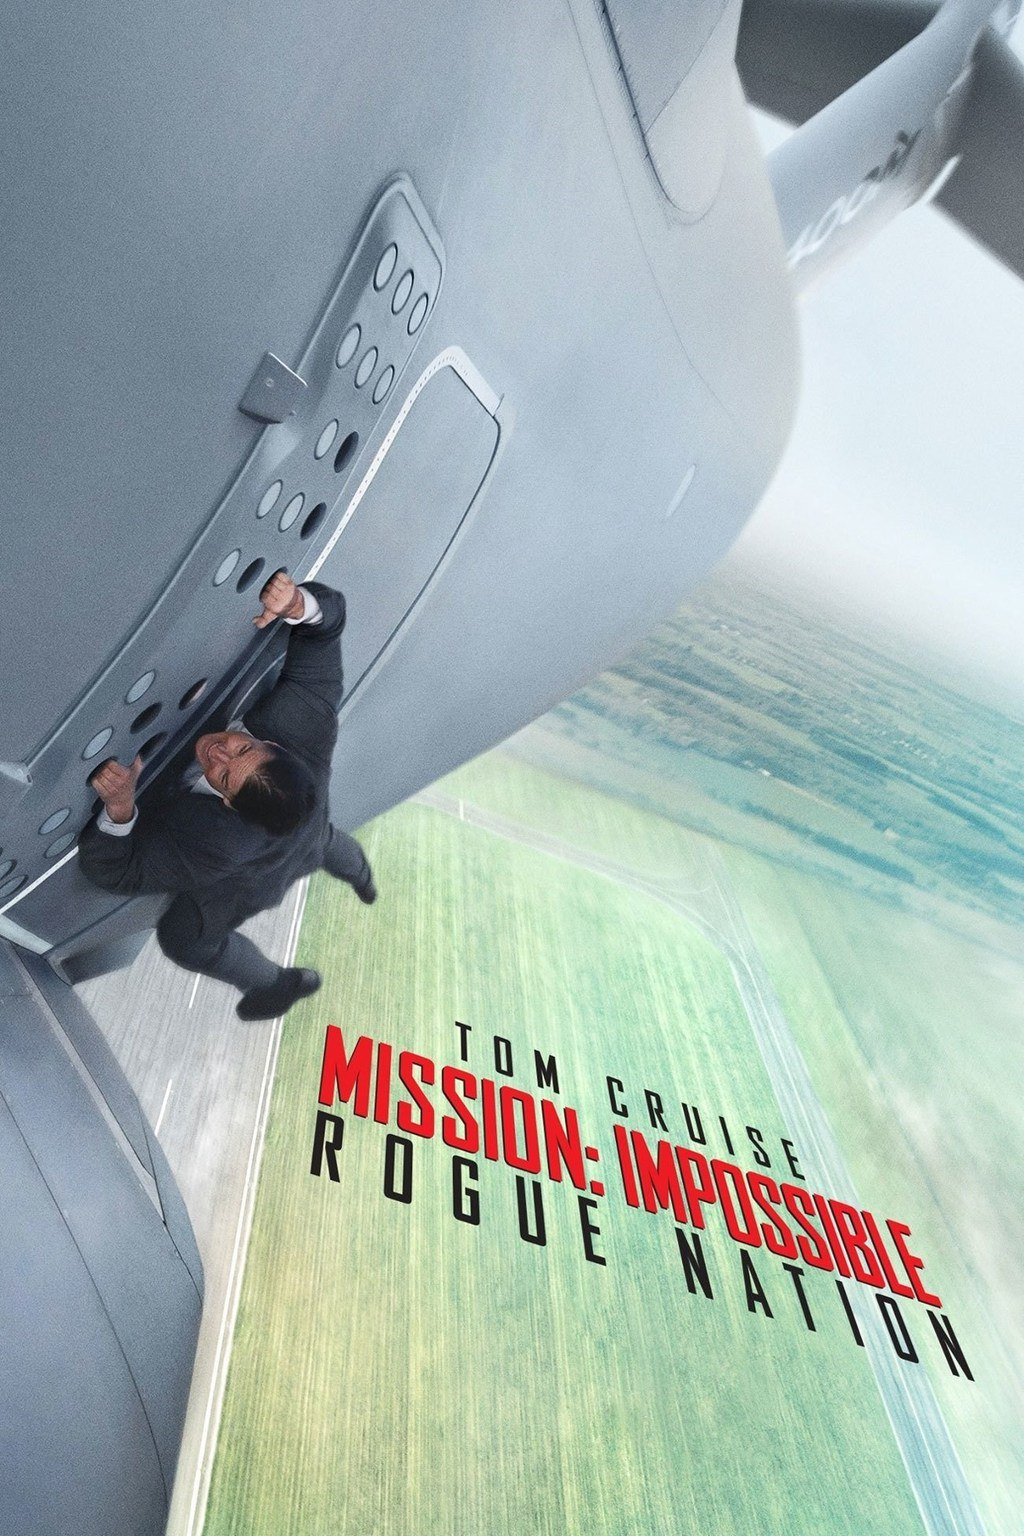 Rogue Nation is the fifth in the Mission Impossible franchise